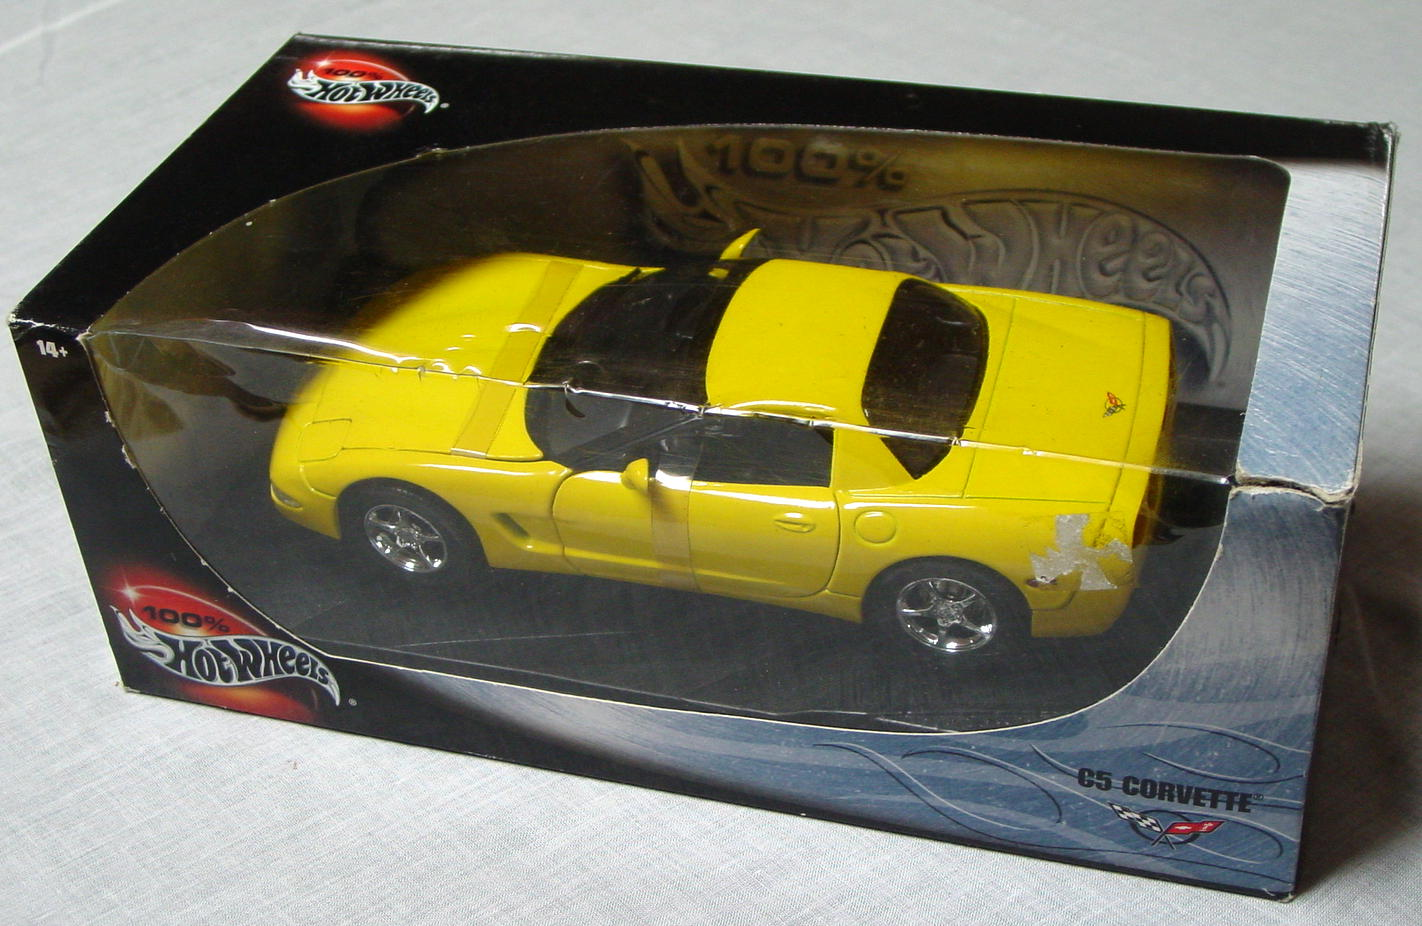 1_18 Scale - HW C5 Corvette Yellow